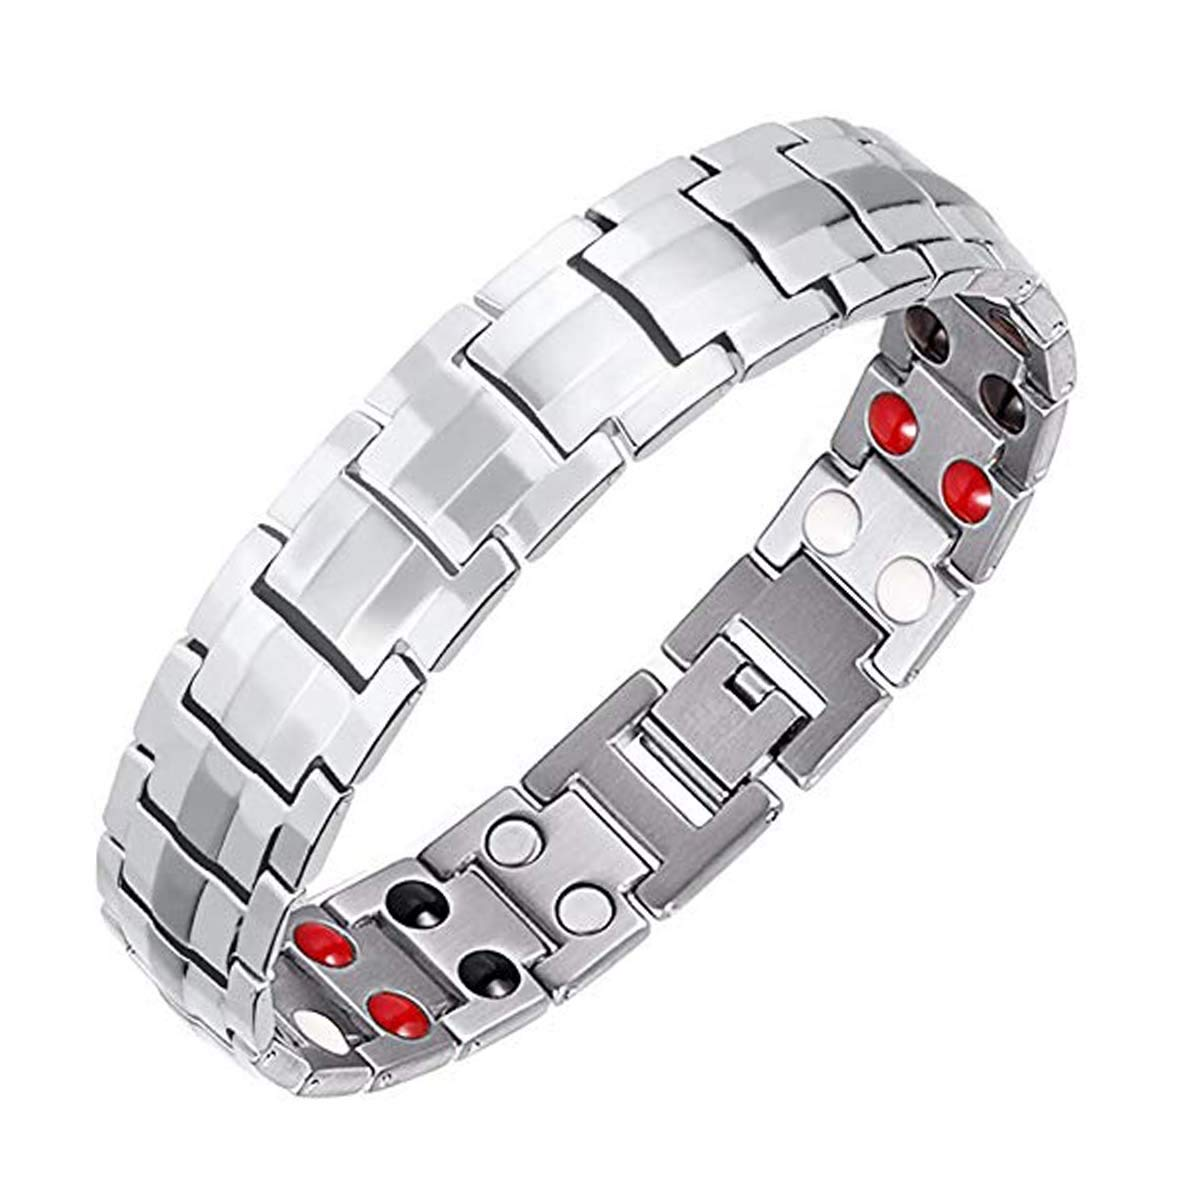 Vinca Mascot Mens Magnetic Therapy Bracelets Double Strong Health Magnets for Arthritis Pain Relief Father's Day, Silver